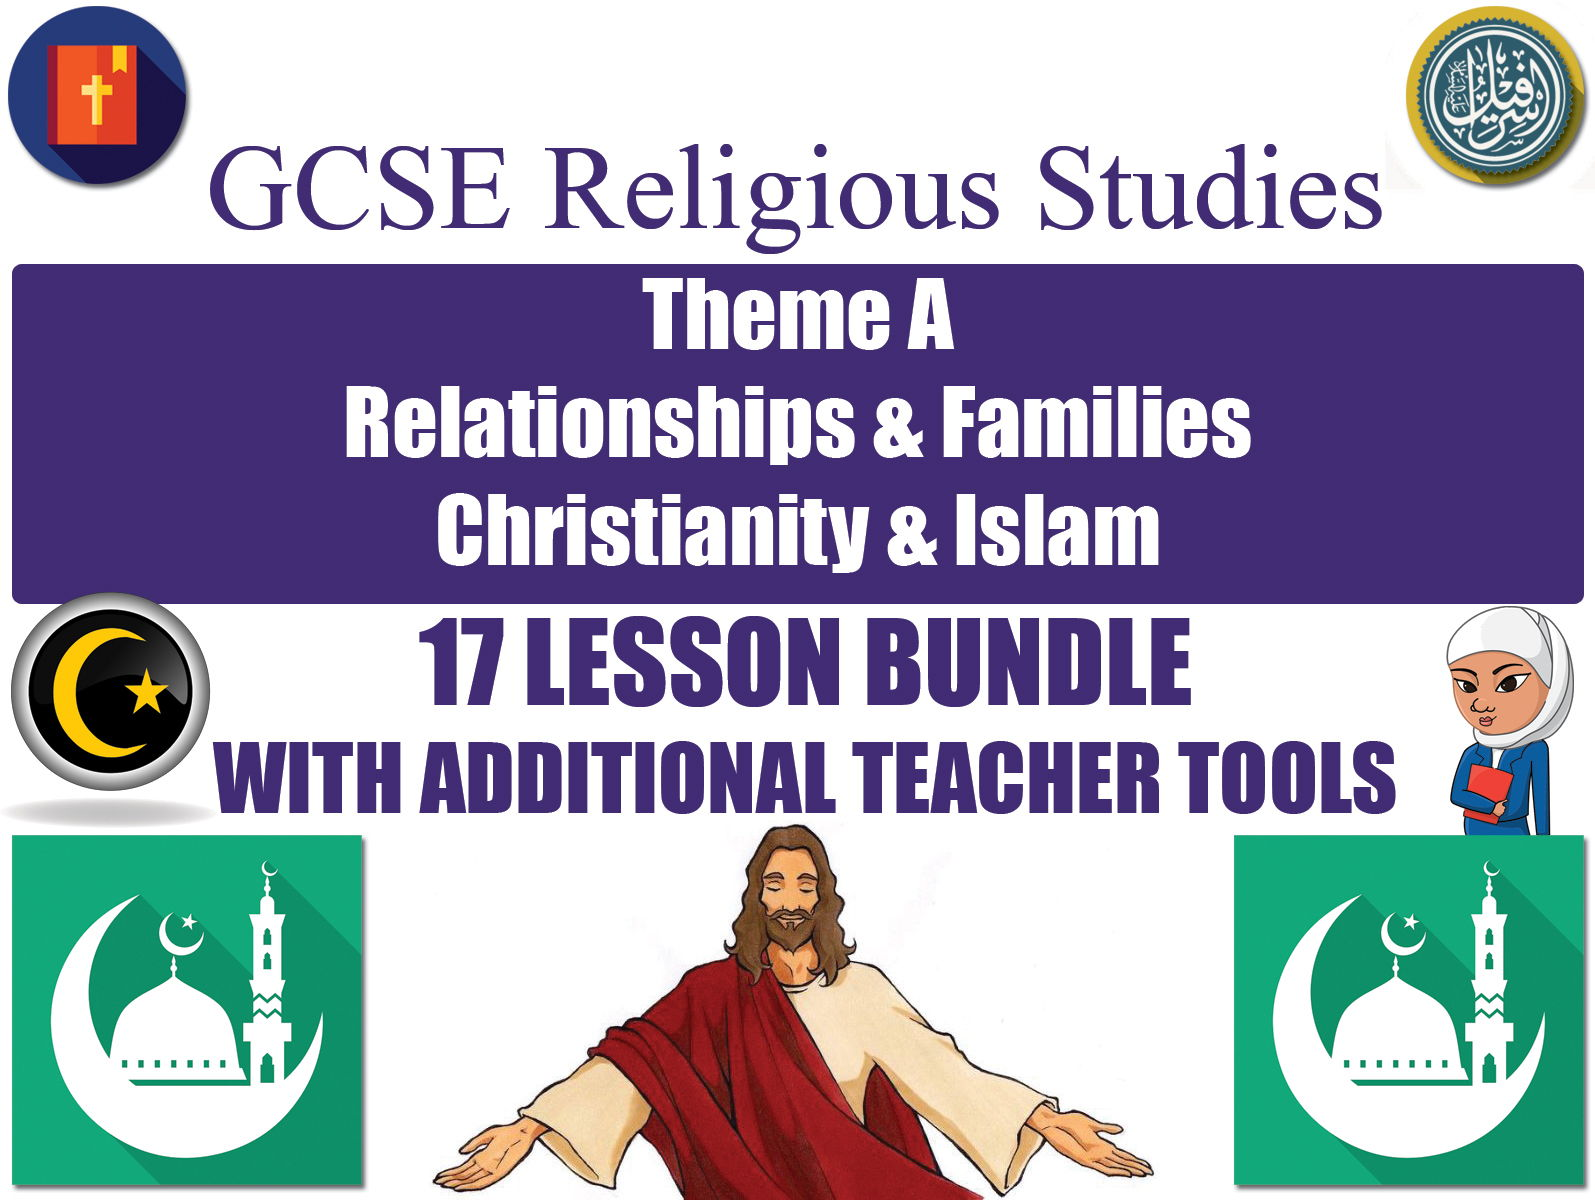 GCSE Islam & Christianity - Relationships & Families (17 Lessons)